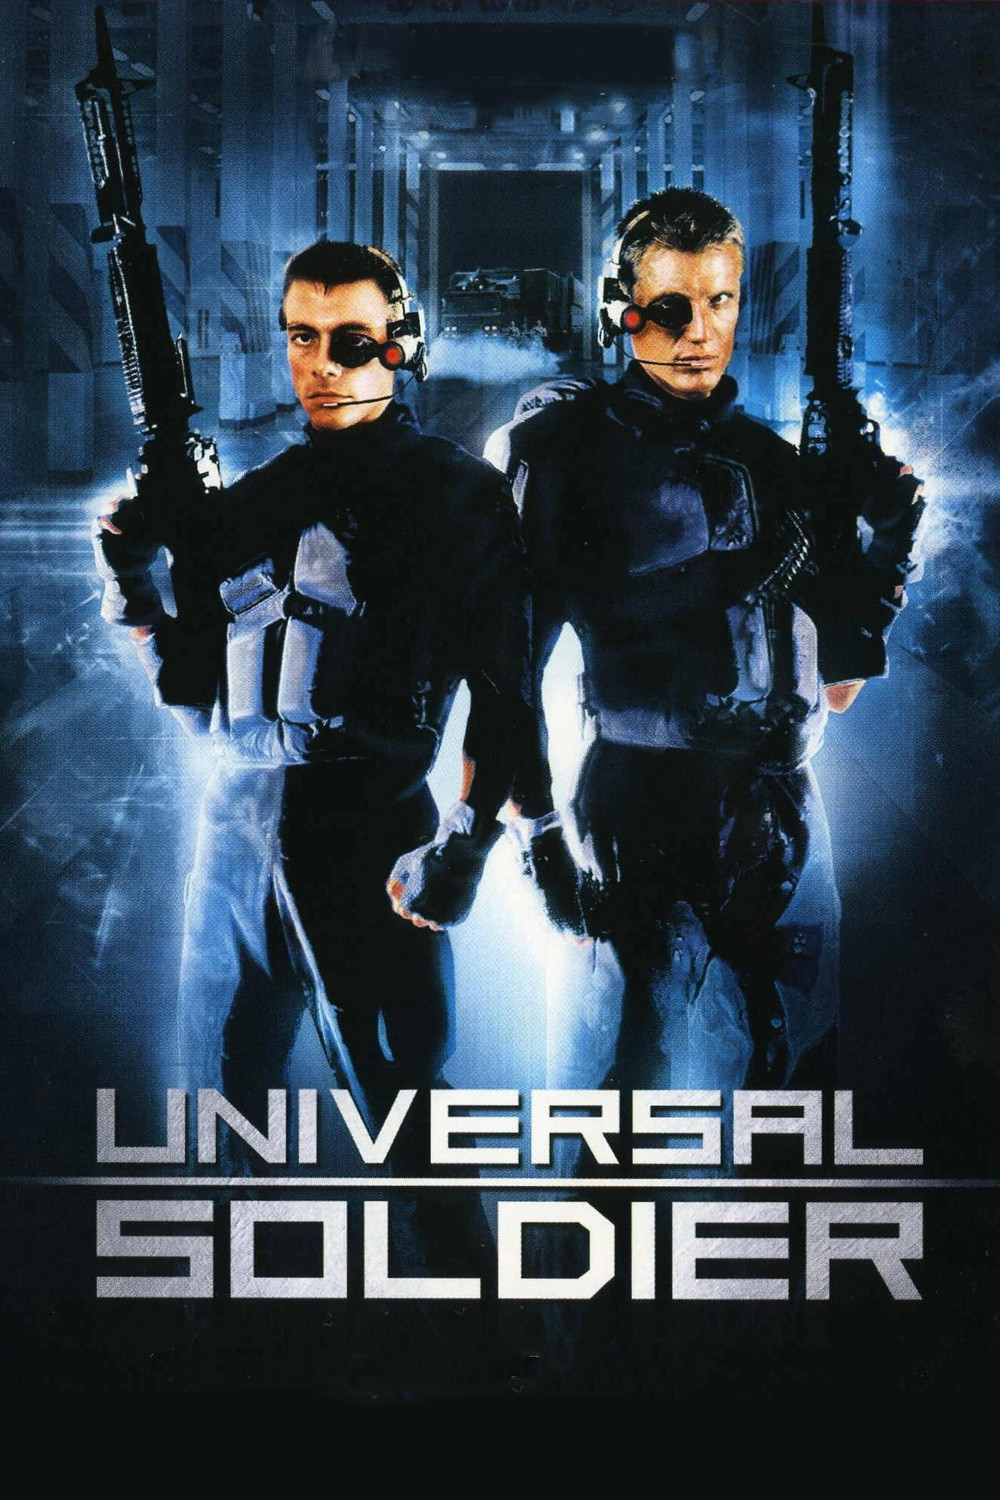 Universal-Soldier-1992-Hindi-Dubbed-Movie-Watch-Online